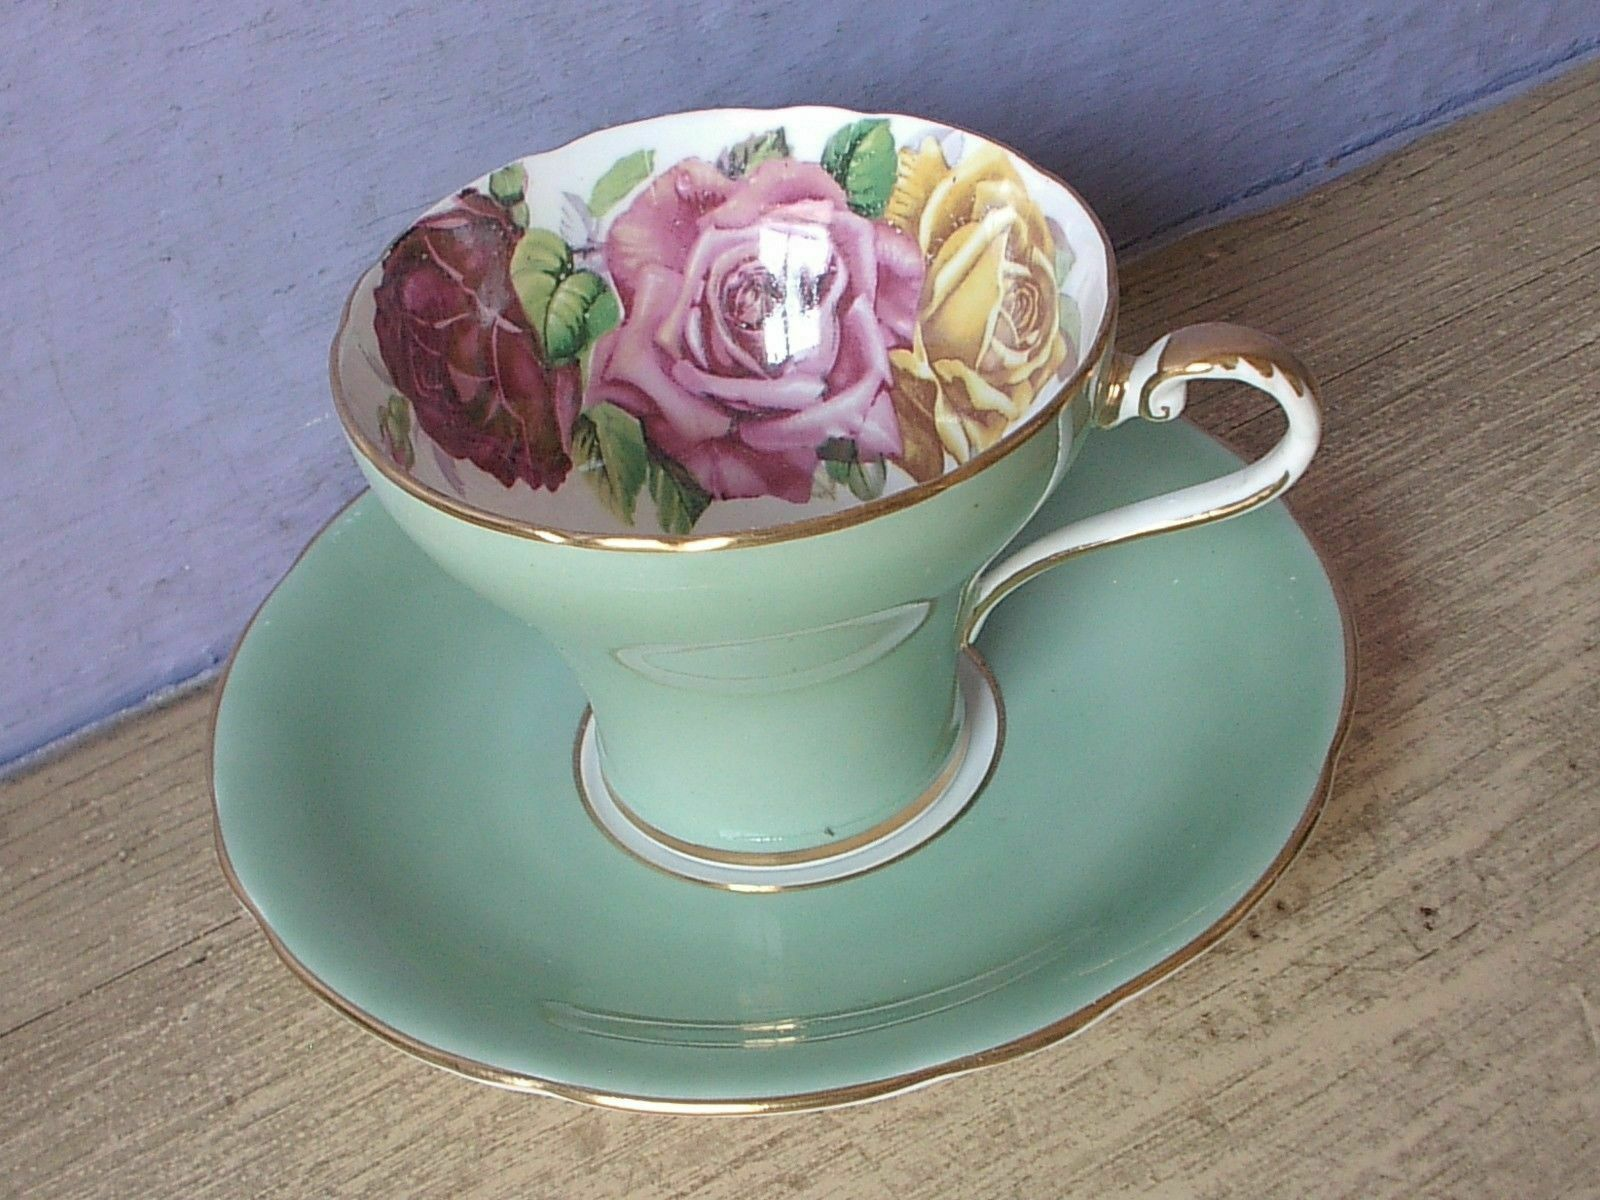 Primary image for Vintage Aynsley Large pink yellow roses green bone china tea cup teacup